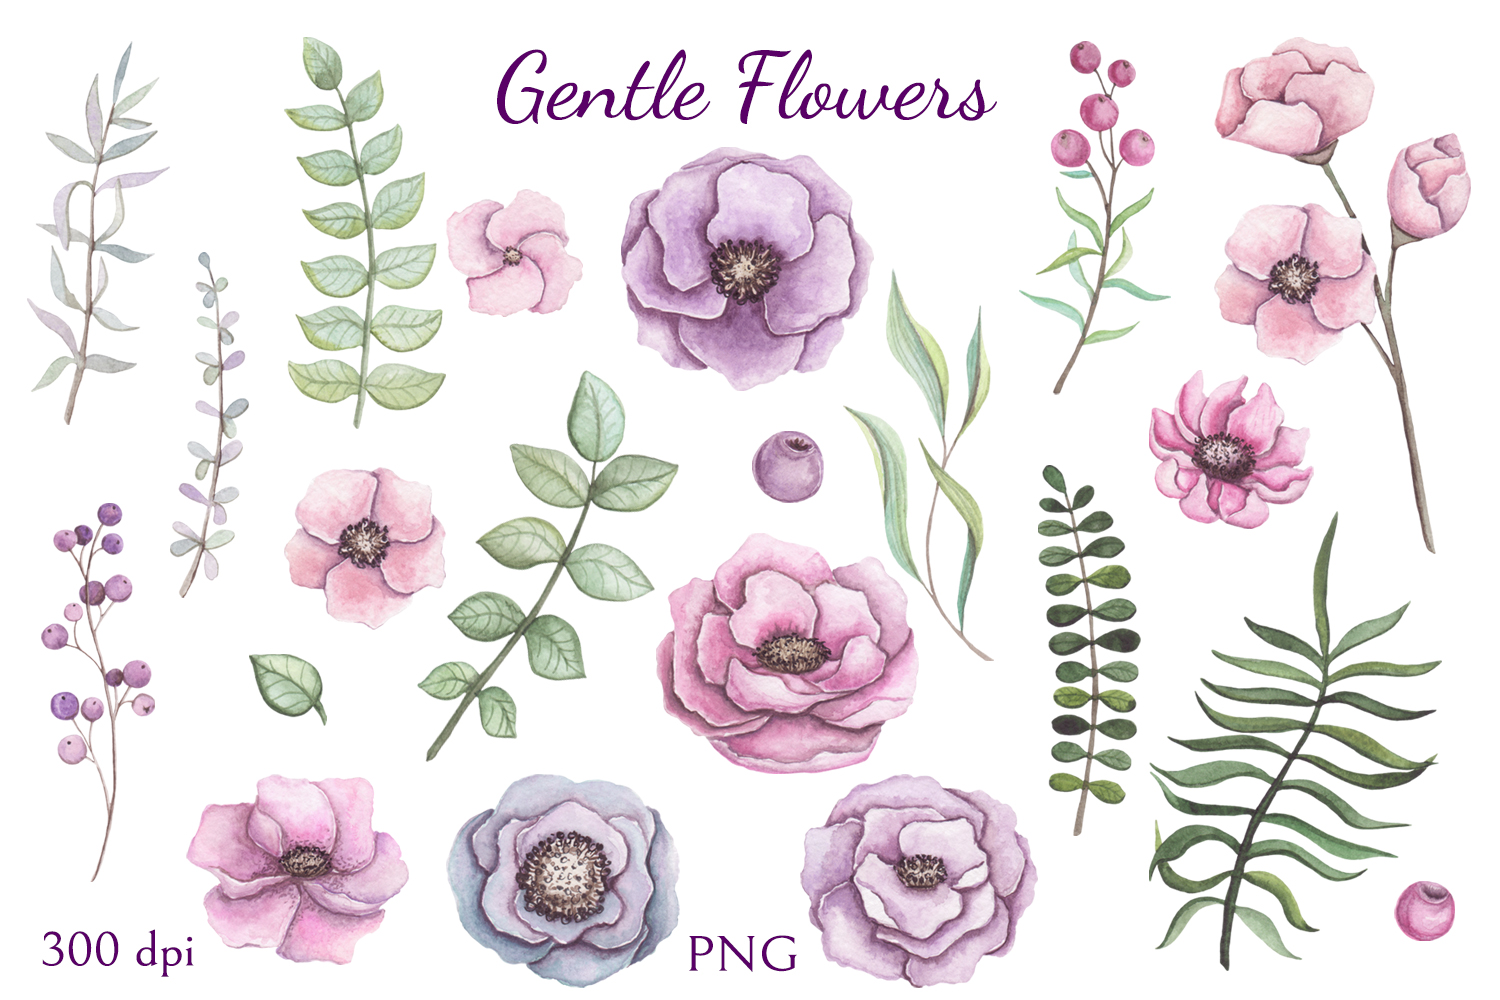 Gentle Flowers example image 4